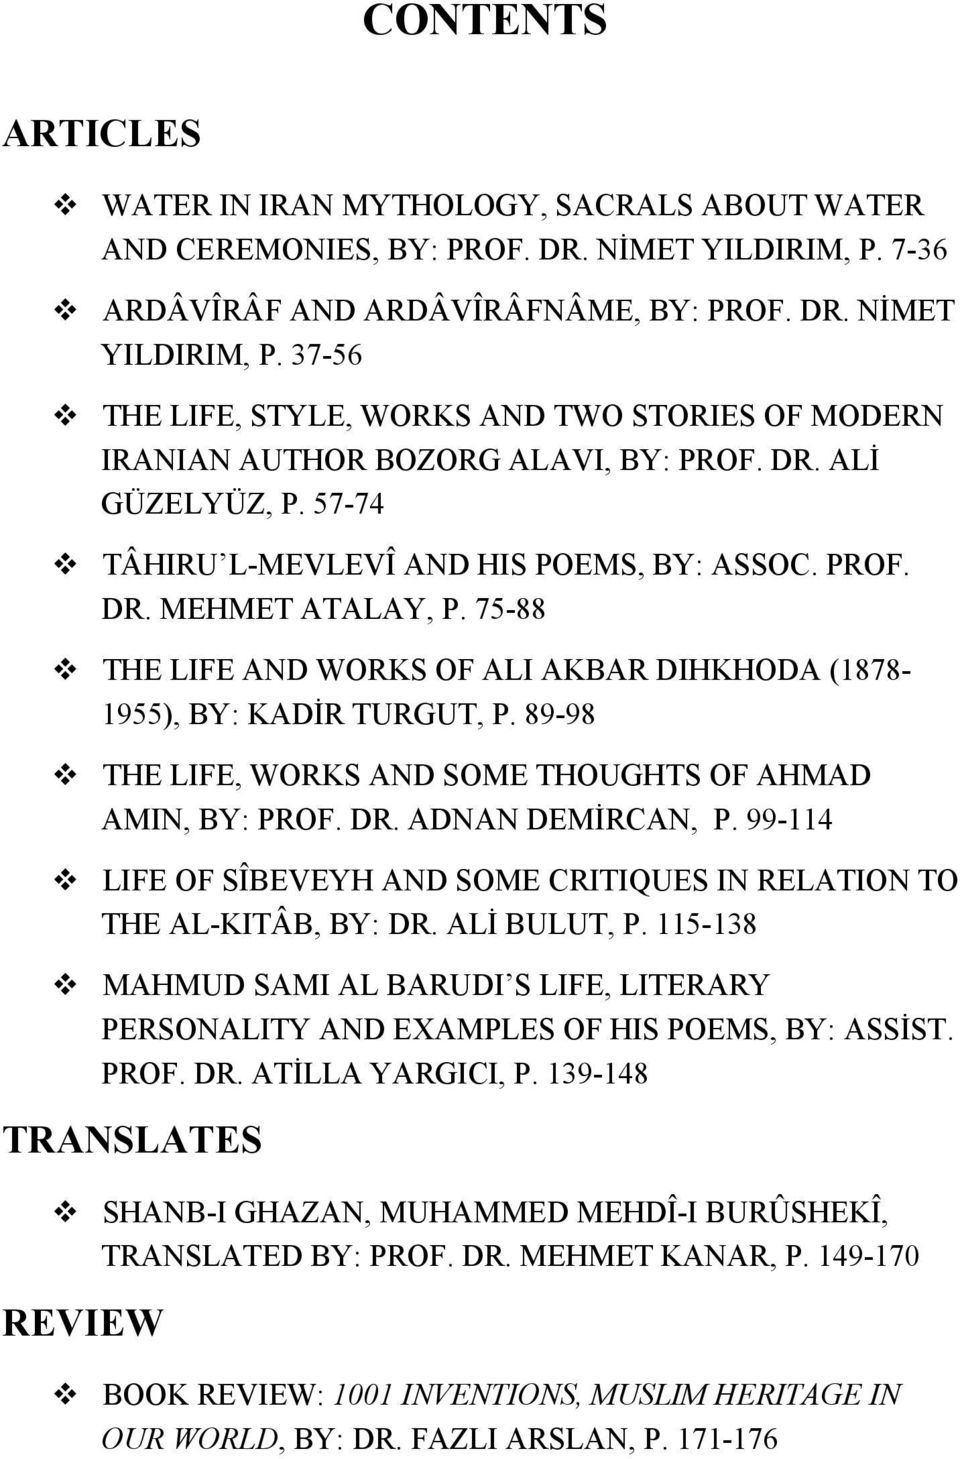 57-74 TÂHIRU L-MEVLEVÎ AND HIS POEMS, BY: ASSOC. PROF. DR. MEHMET ATALAY, P. 75-88 THE LIFE AND WORKS OF ALI AKBAR DIHKHODA (1878-1955), BY: KADİR TURGUT, P.